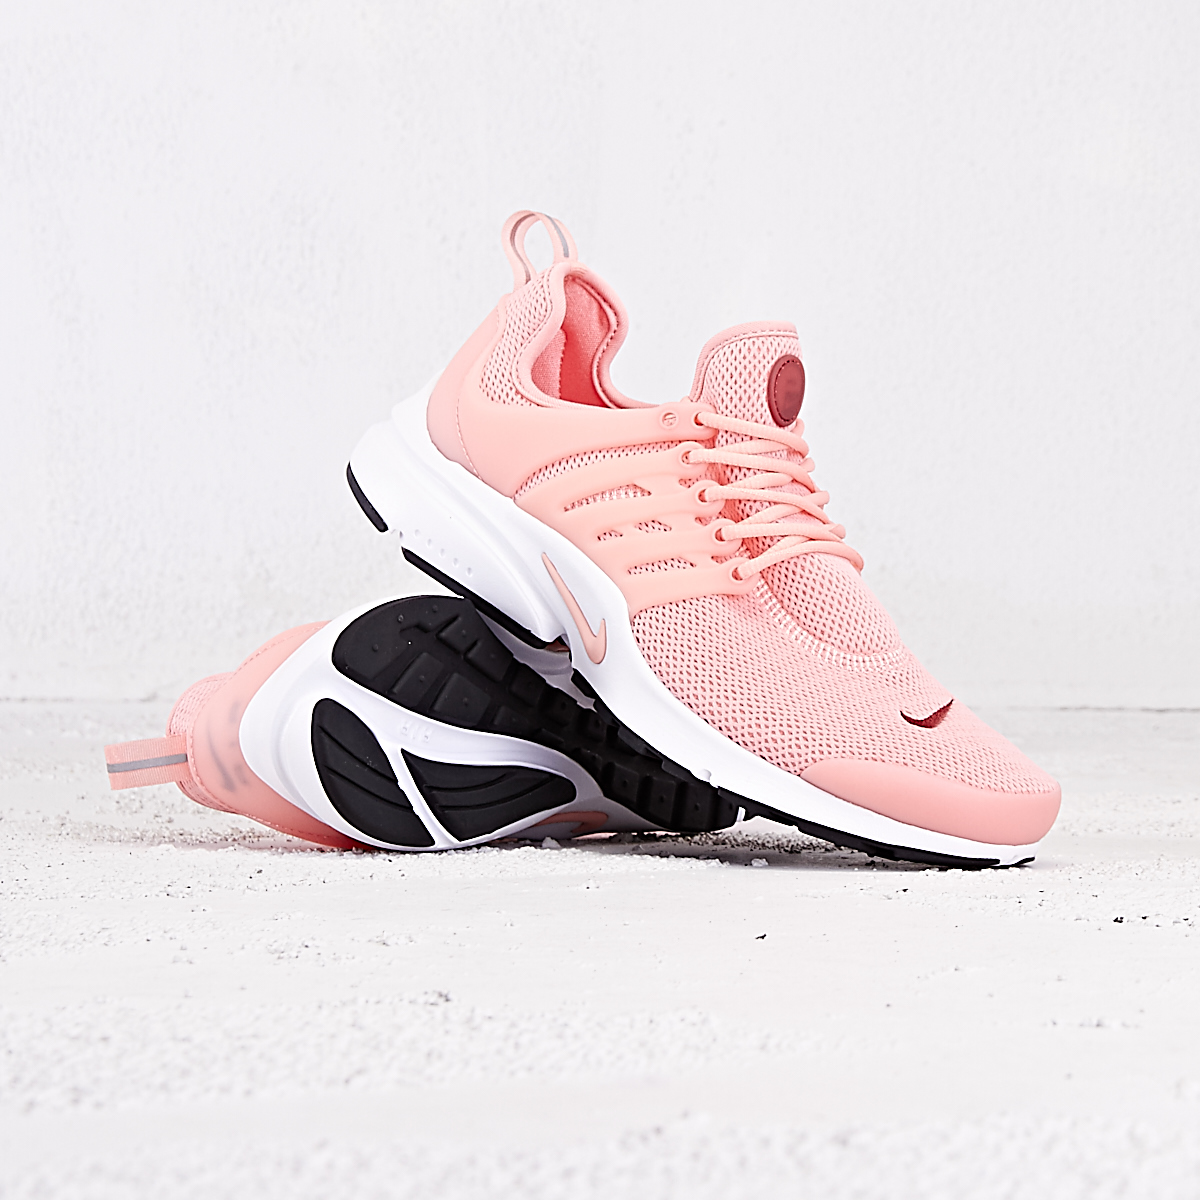 official photos 2a1b6 e04a3 AIR PRESTO Wmns